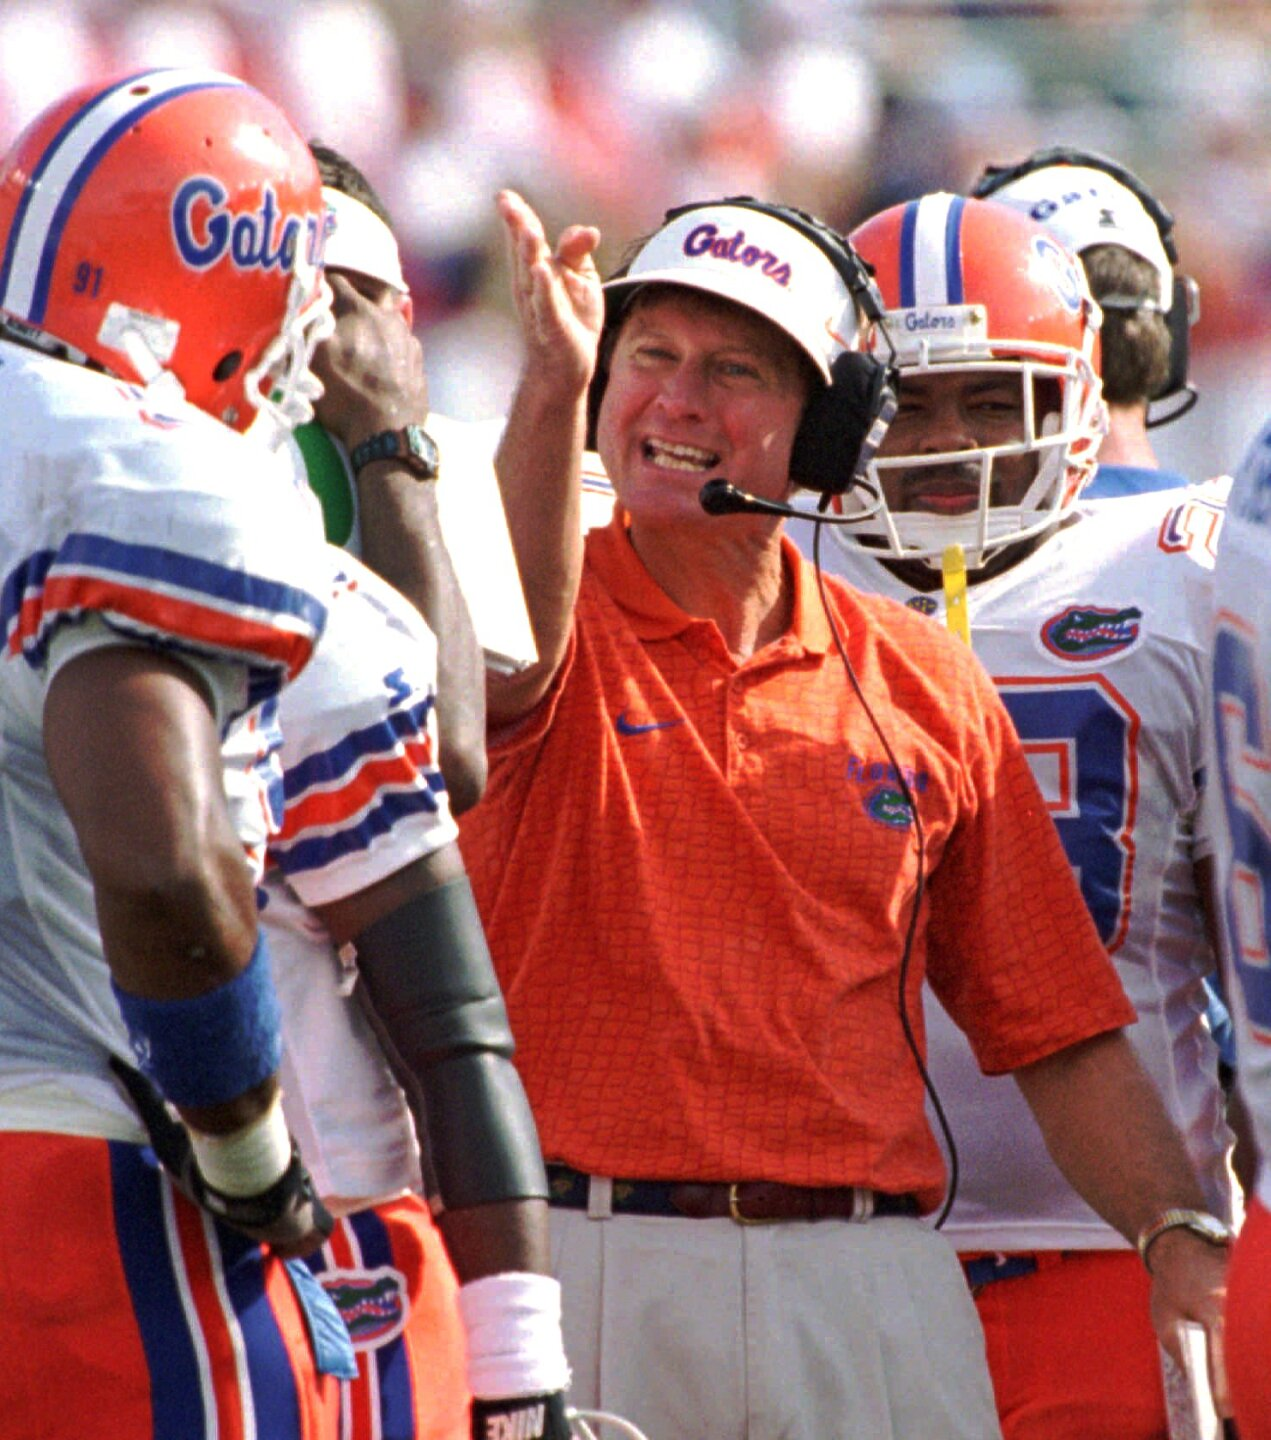 Florida Gators head coach Steve Spurrier yells at players during game vs. Florida State Seminoles in 1996